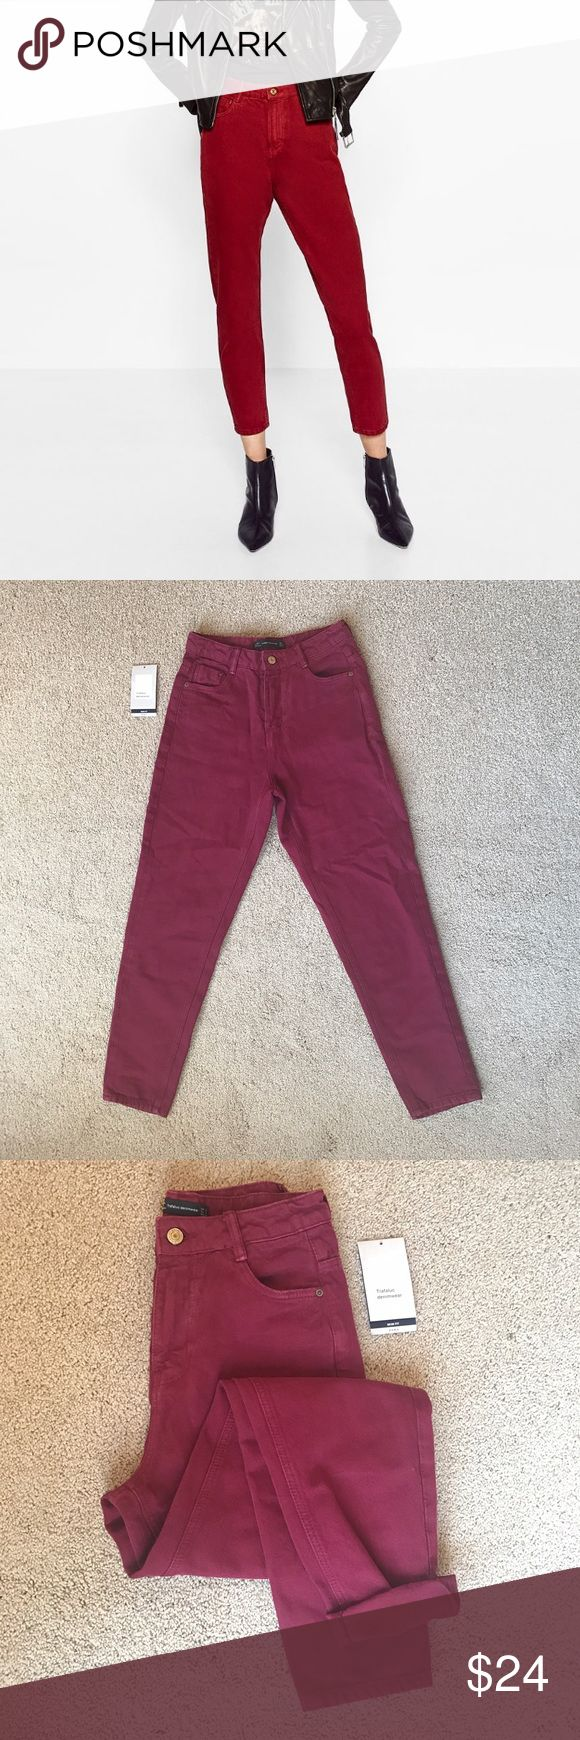 BRAND NEW Zara Mom jeans burgundy I bought these online but they turned out to be too small for me. Never worn before super cute mom jeans/trousers that are sure to make any outfit pop. Jeans give off a vintage vibe, check last picture to see small touches to make them look worn. Tags are not attached but still have them. Feel free to ask questions or message me. The color in the product photo is less accurate but I included it because it's from Zara. Please feel free to ask questions! Zara…